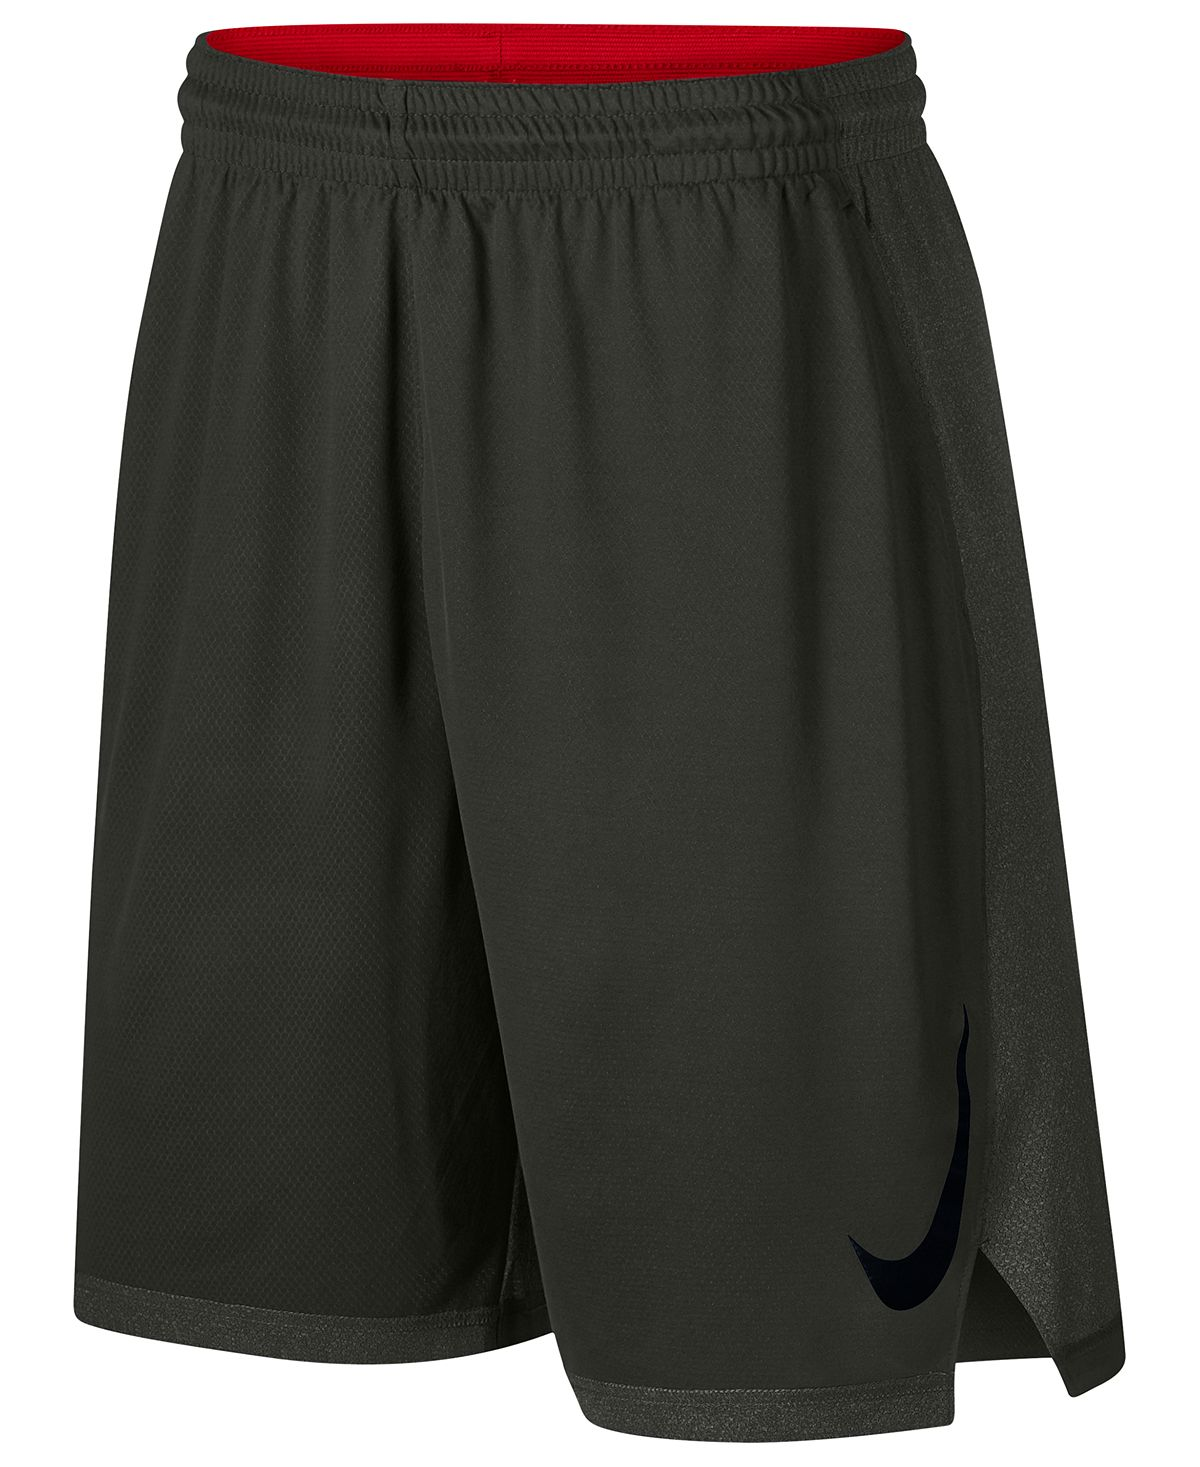 "Nike Dry Basketball 11"" Shorts Sequoia"